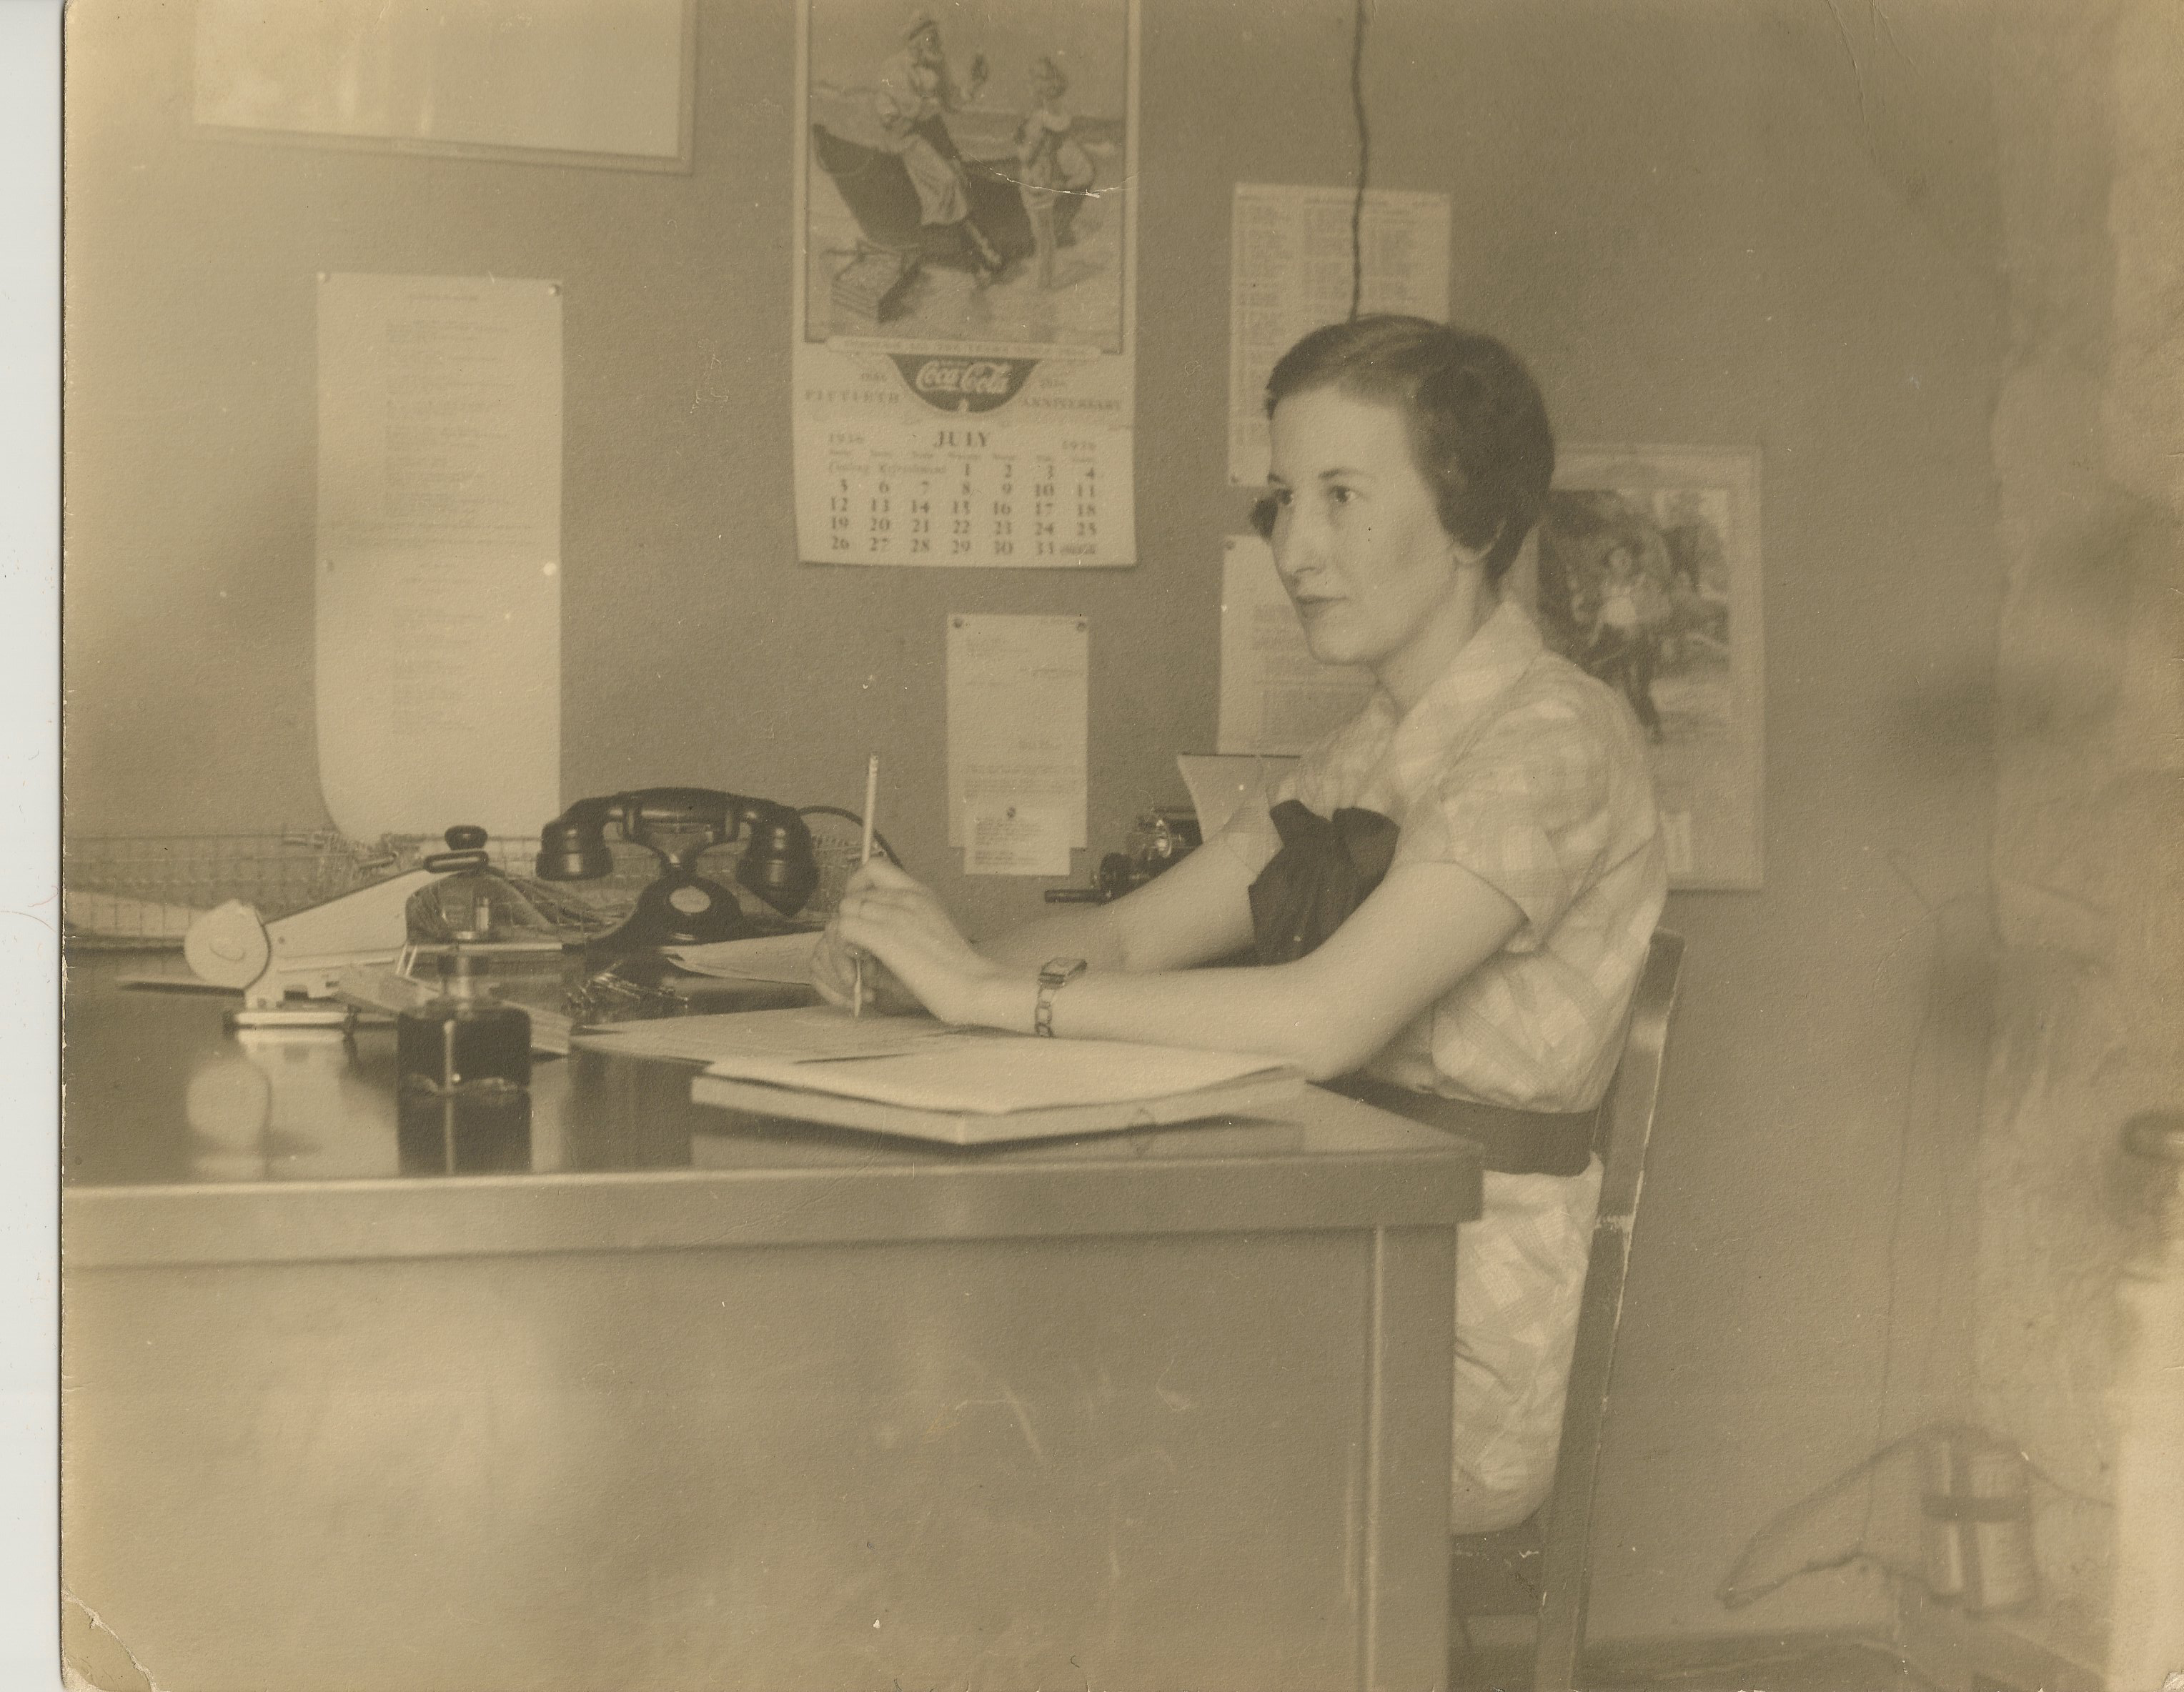 Mildred Robey at work in Admin in the late 1930s